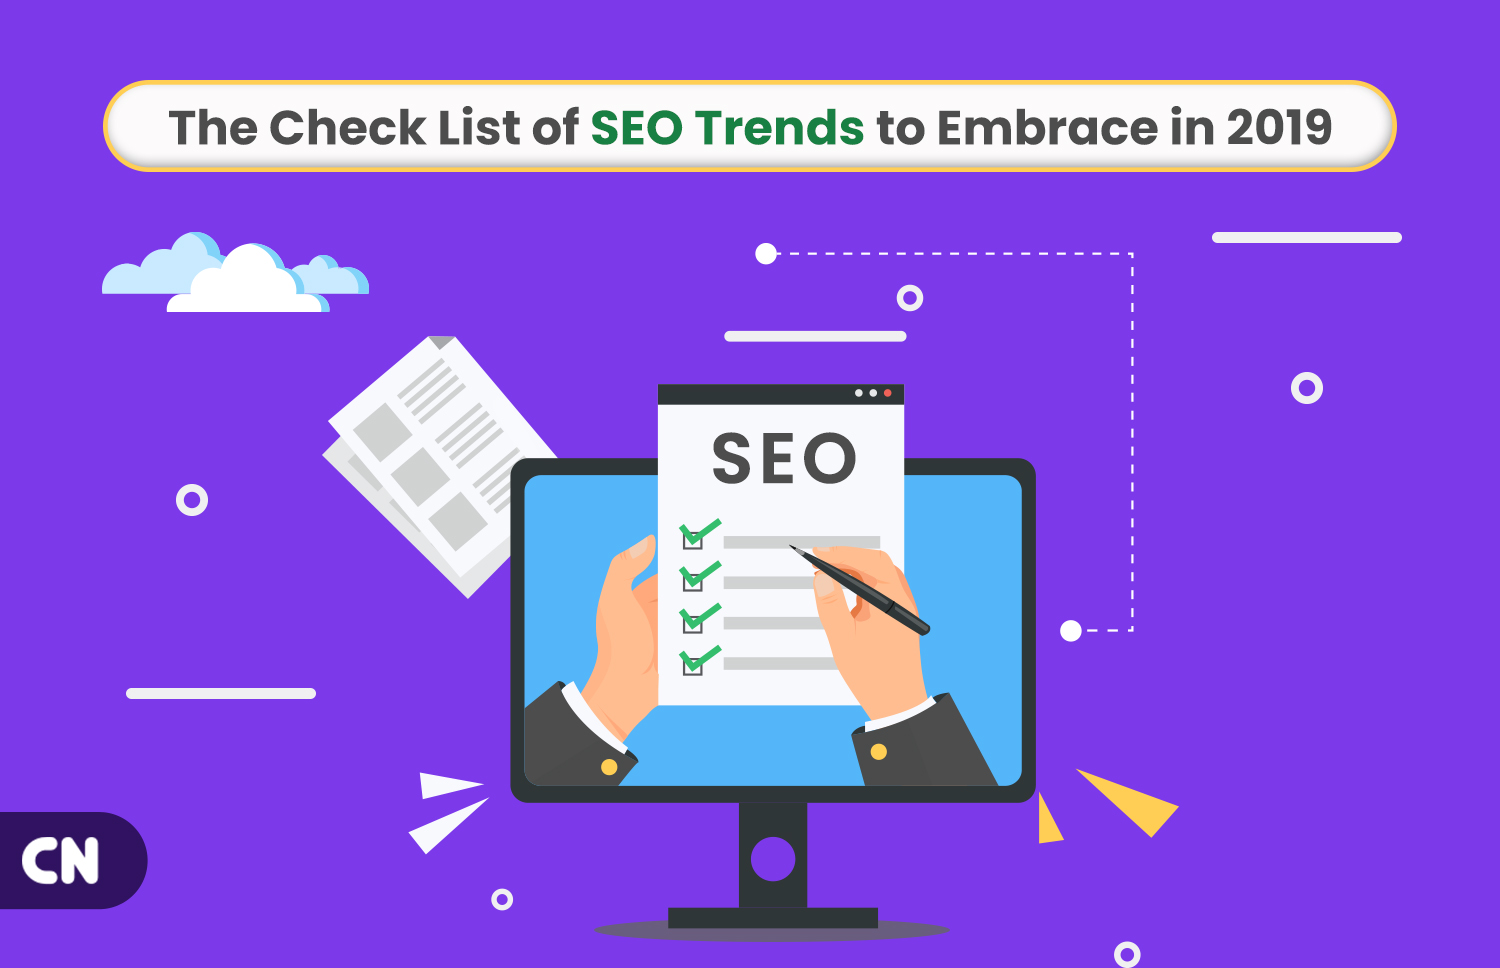 Check List of SEO Trends